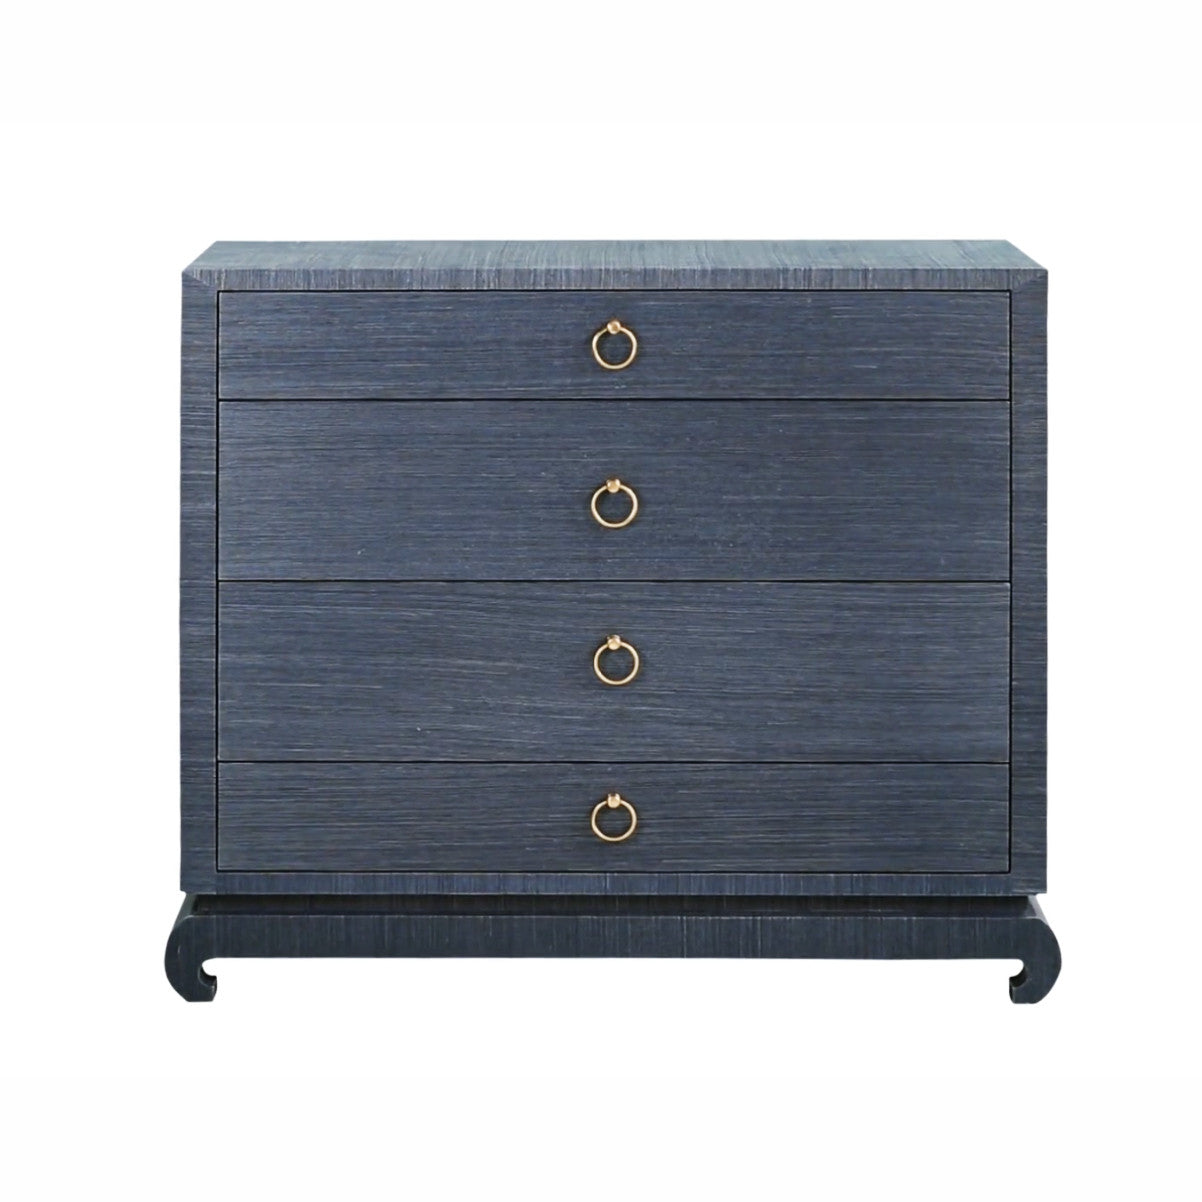 Lacquered Navy Grasscloth Dresser Black Rooster Decor